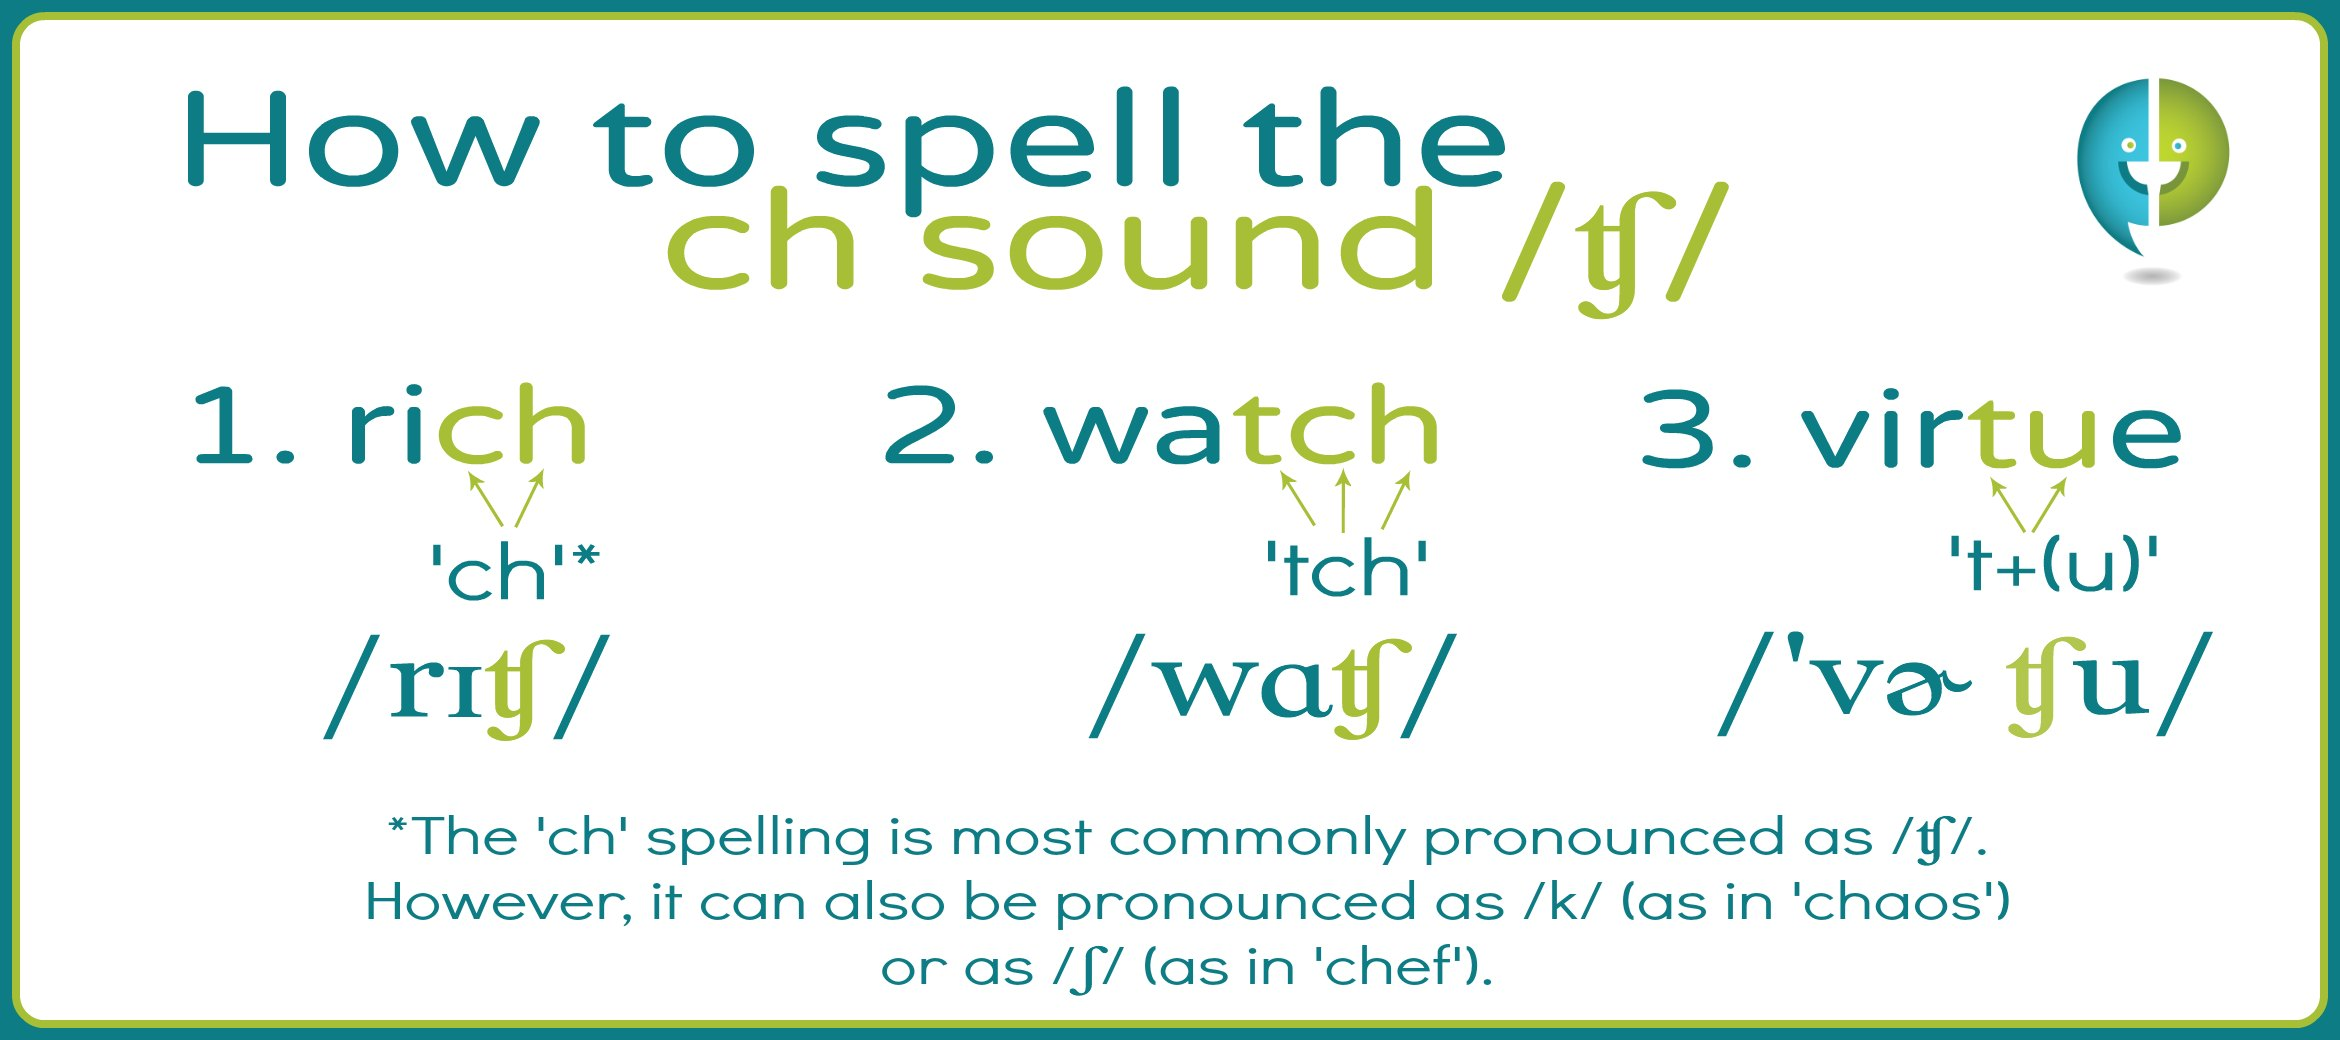 The 'ch' can be spelled 'ch,' 'tch,' and 't+u'.